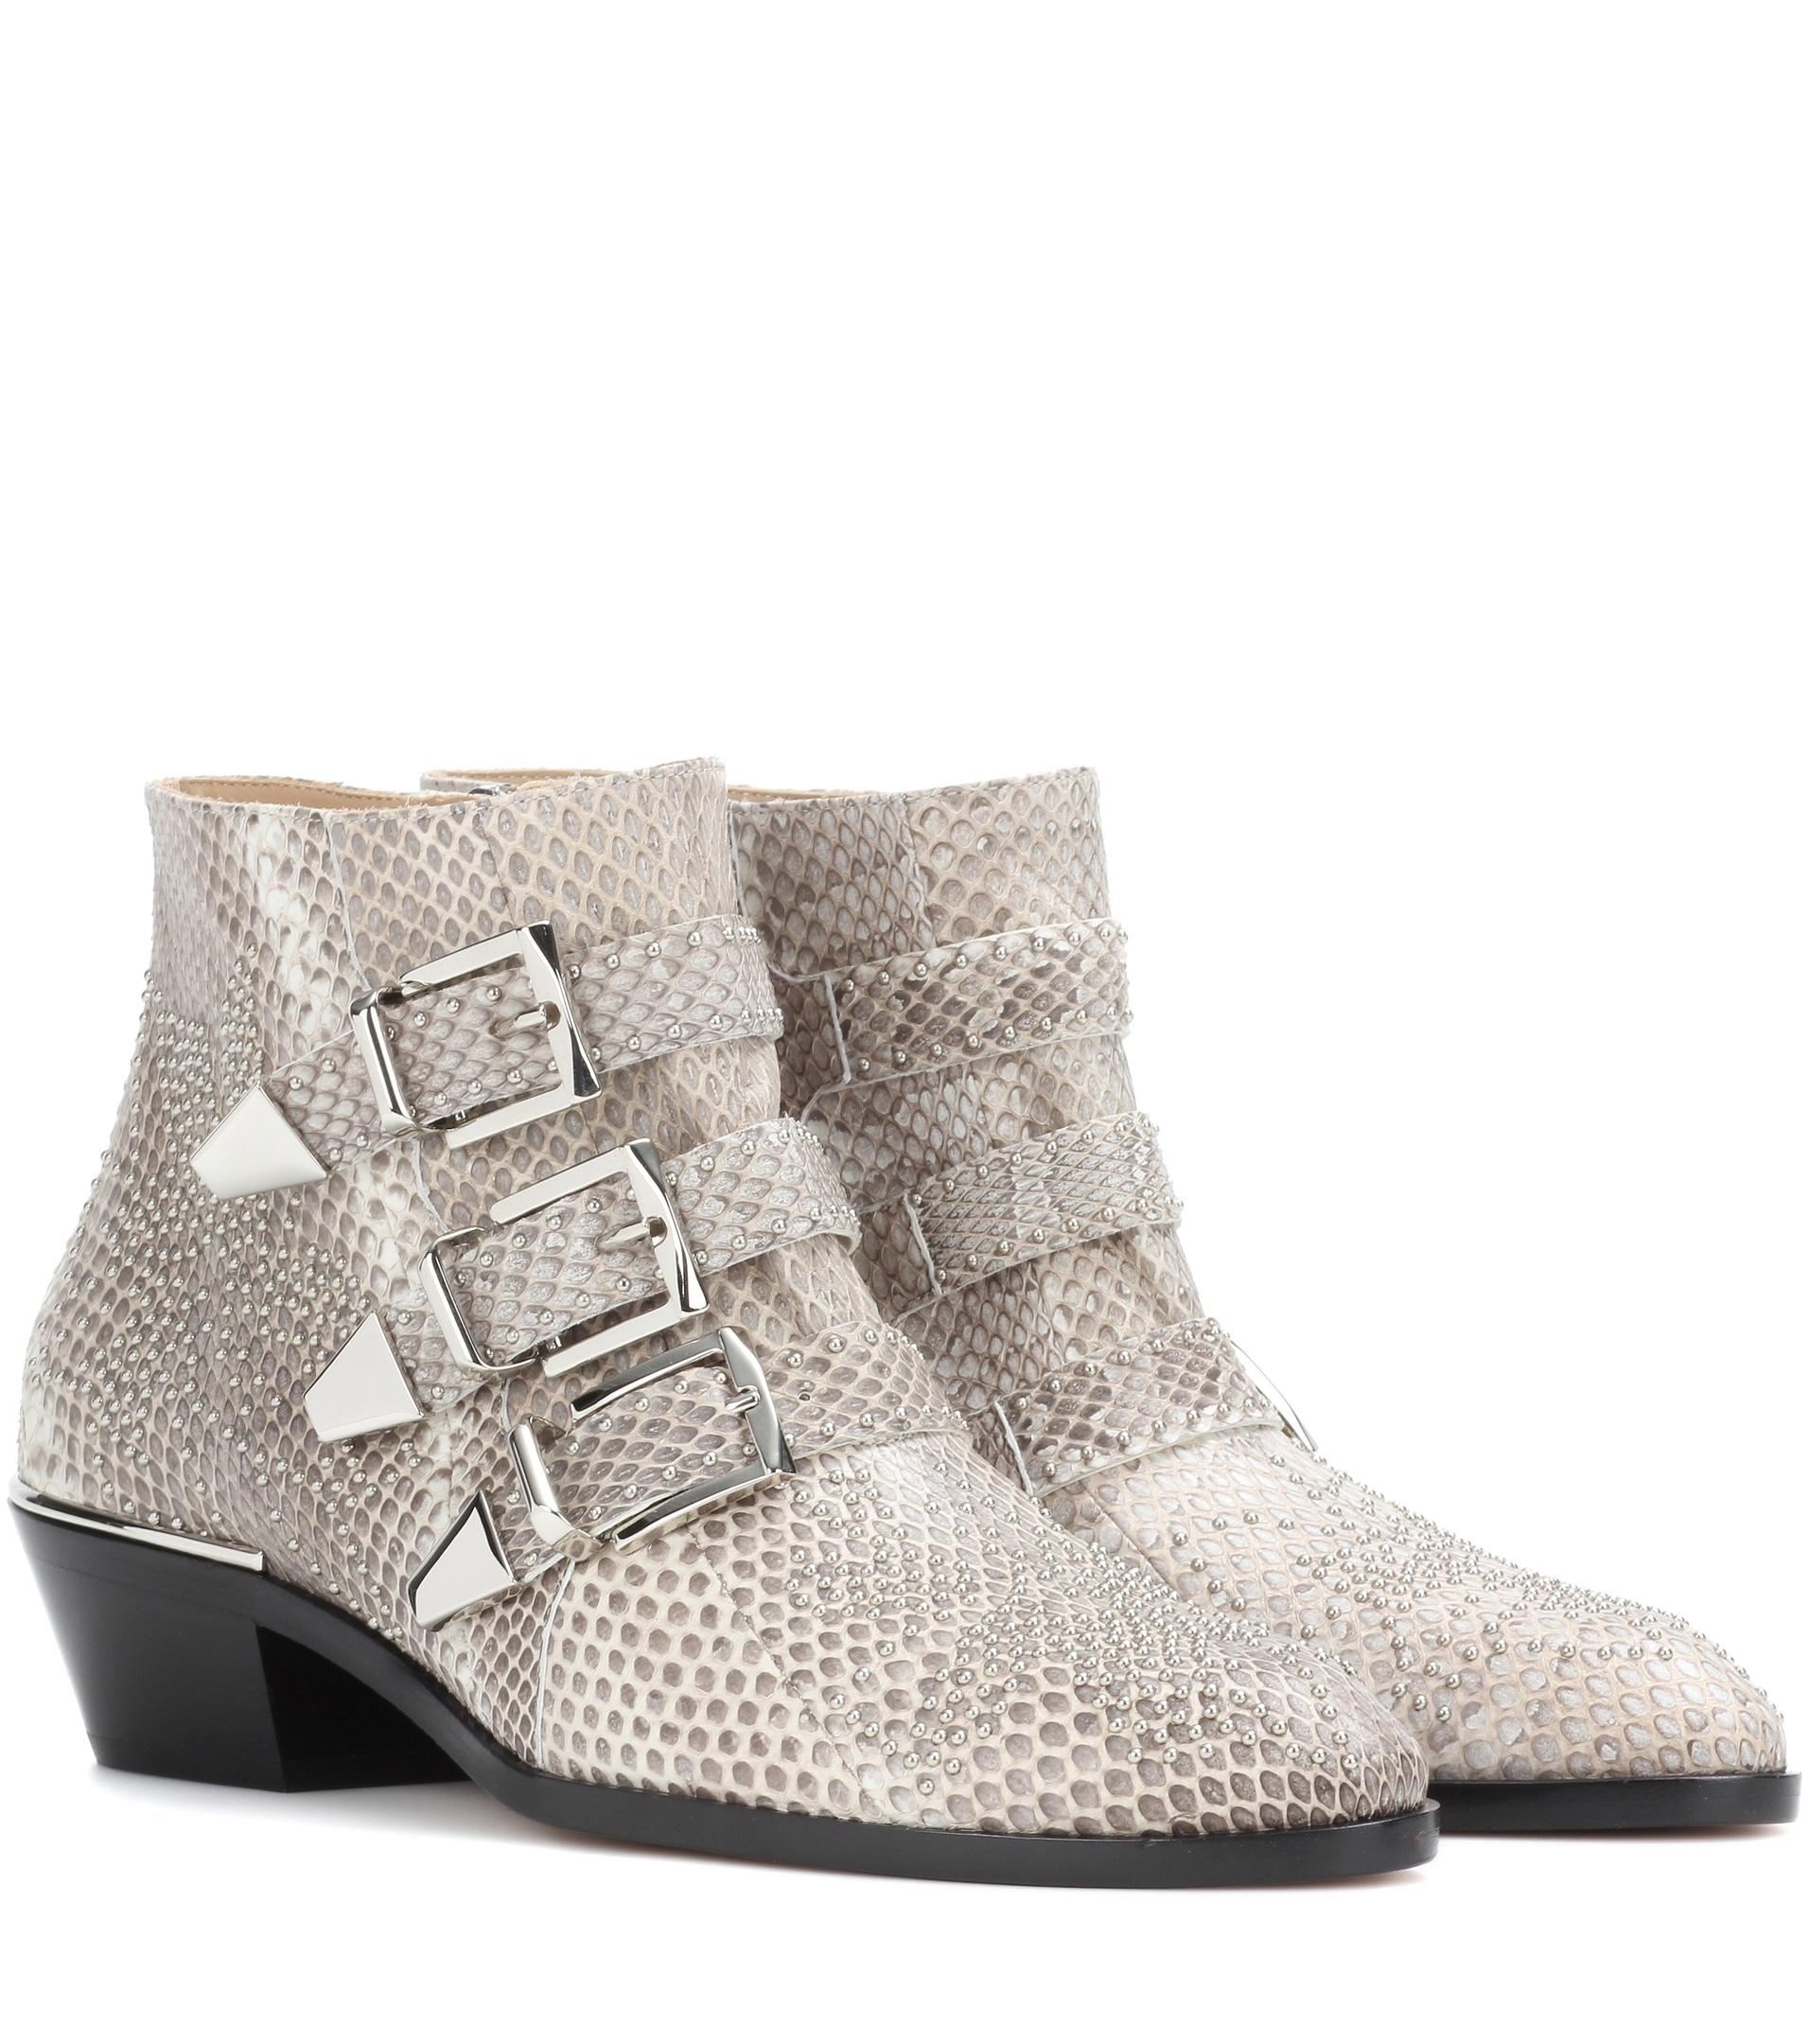 lyst chlo susanna snakeskin ankle boots in white. Black Bedroom Furniture Sets. Home Design Ideas